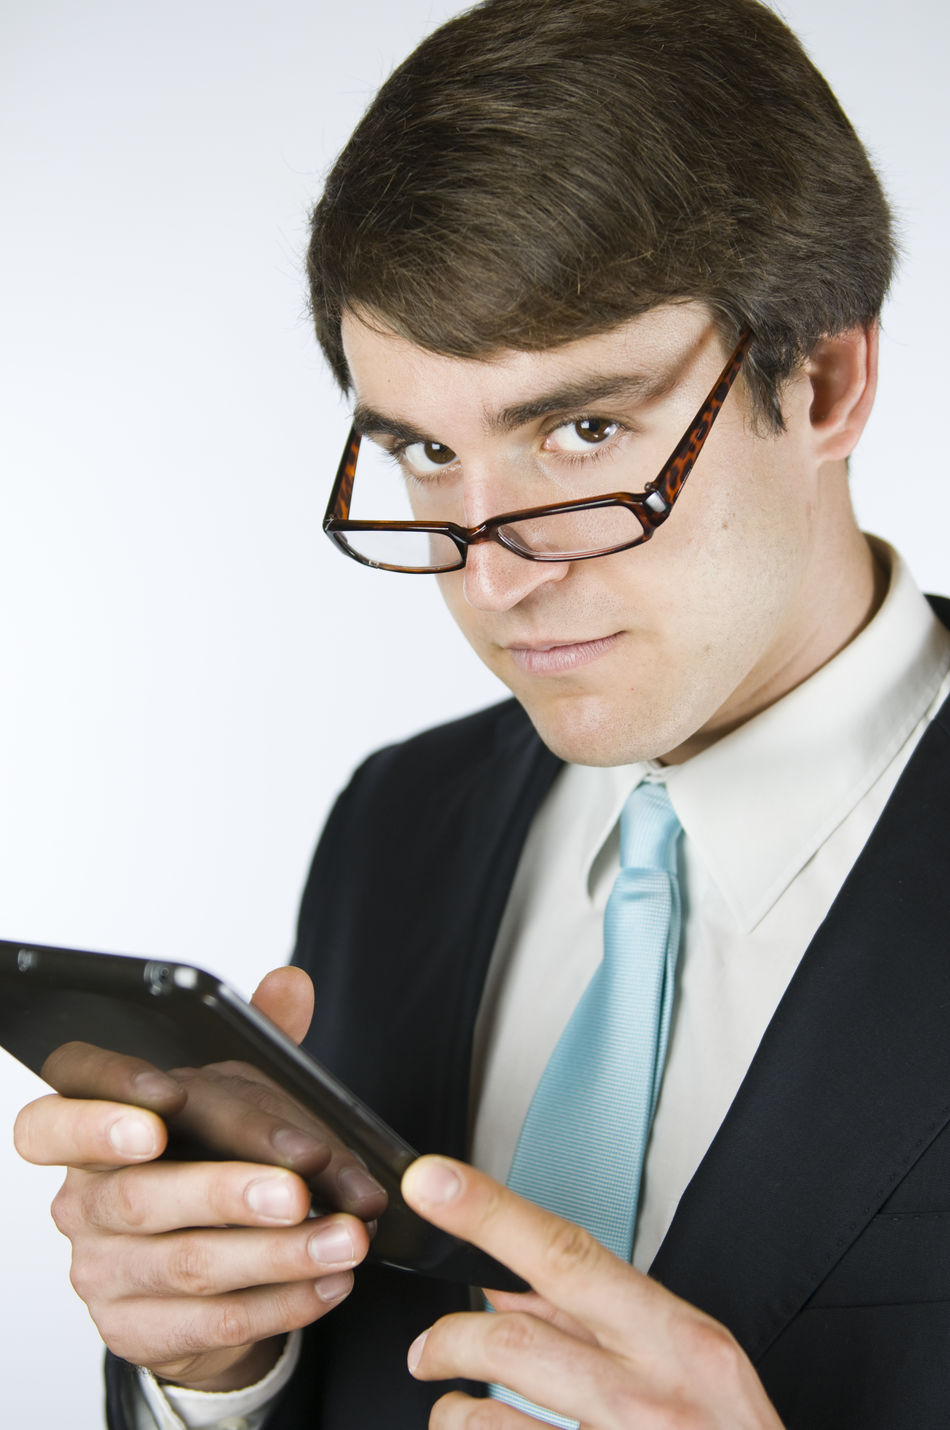 View of the upper body of a young man in the suit a tablet in the hands hatend with serious look over the edge of the glasses in the direction of camera looking. Casual Clothing Glases Handsome Holding Indoors  IPad Mini Look Over The Glasses Looking Looking At Camera Man Person Professional Occupation Sceptical Sceptical Look Studio Shot Tie Waist Up White Background Young Adult